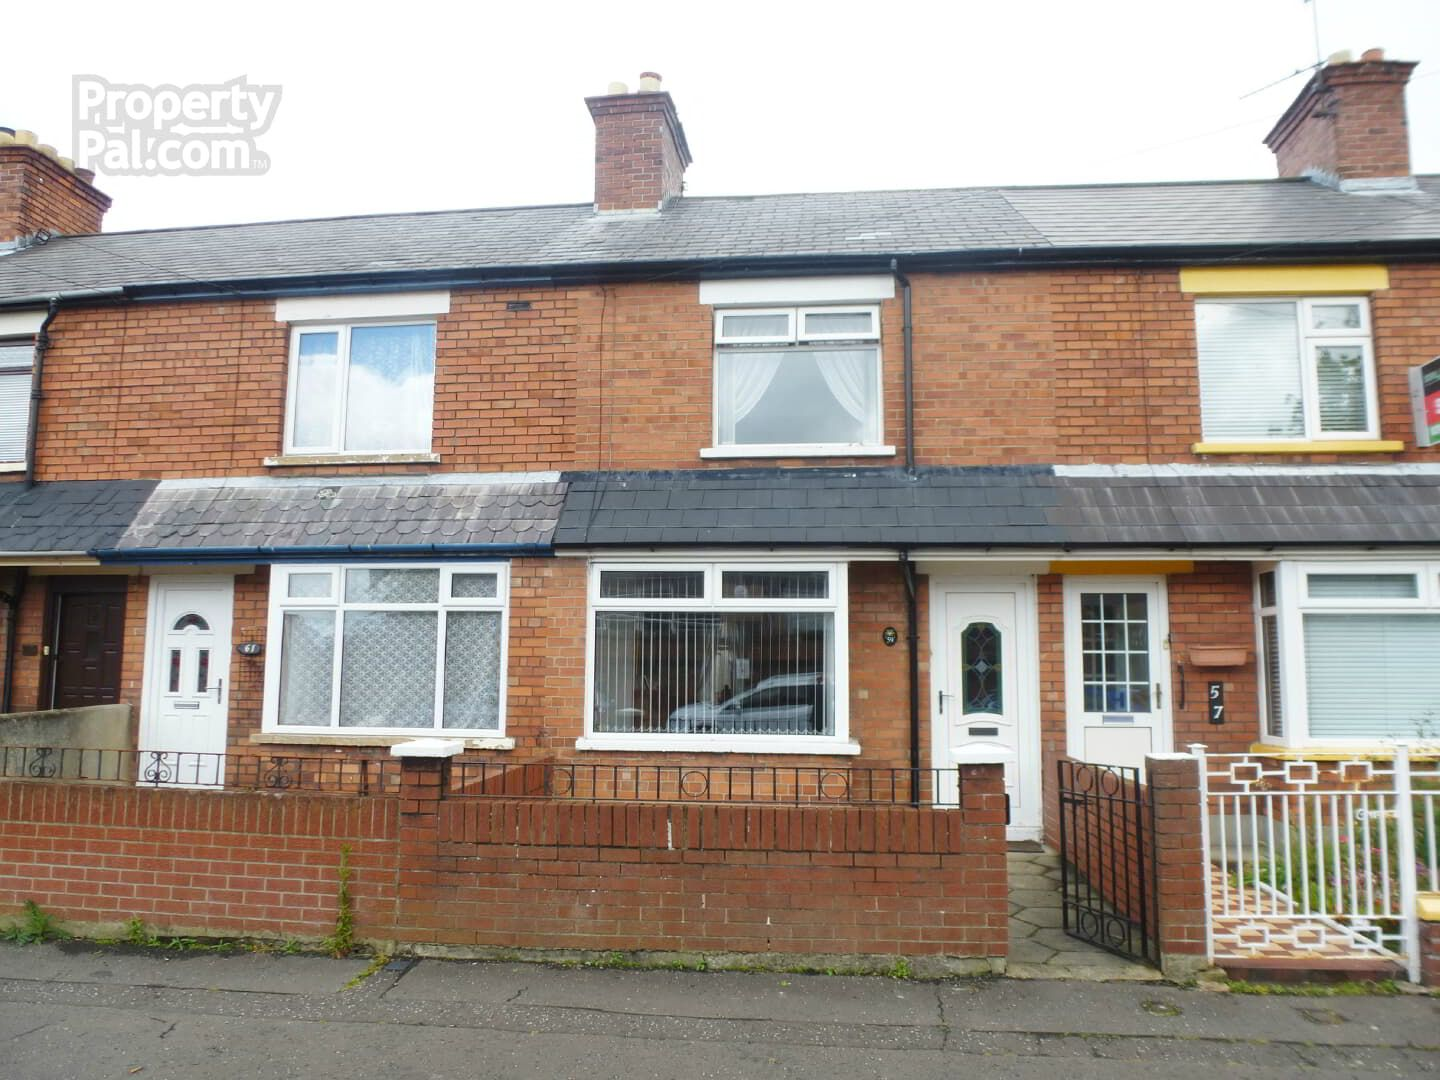 This 2 Bed Terrace House For Sale Is Located At 59 Willowfield Drive, Belfast. Find Out More Inside.